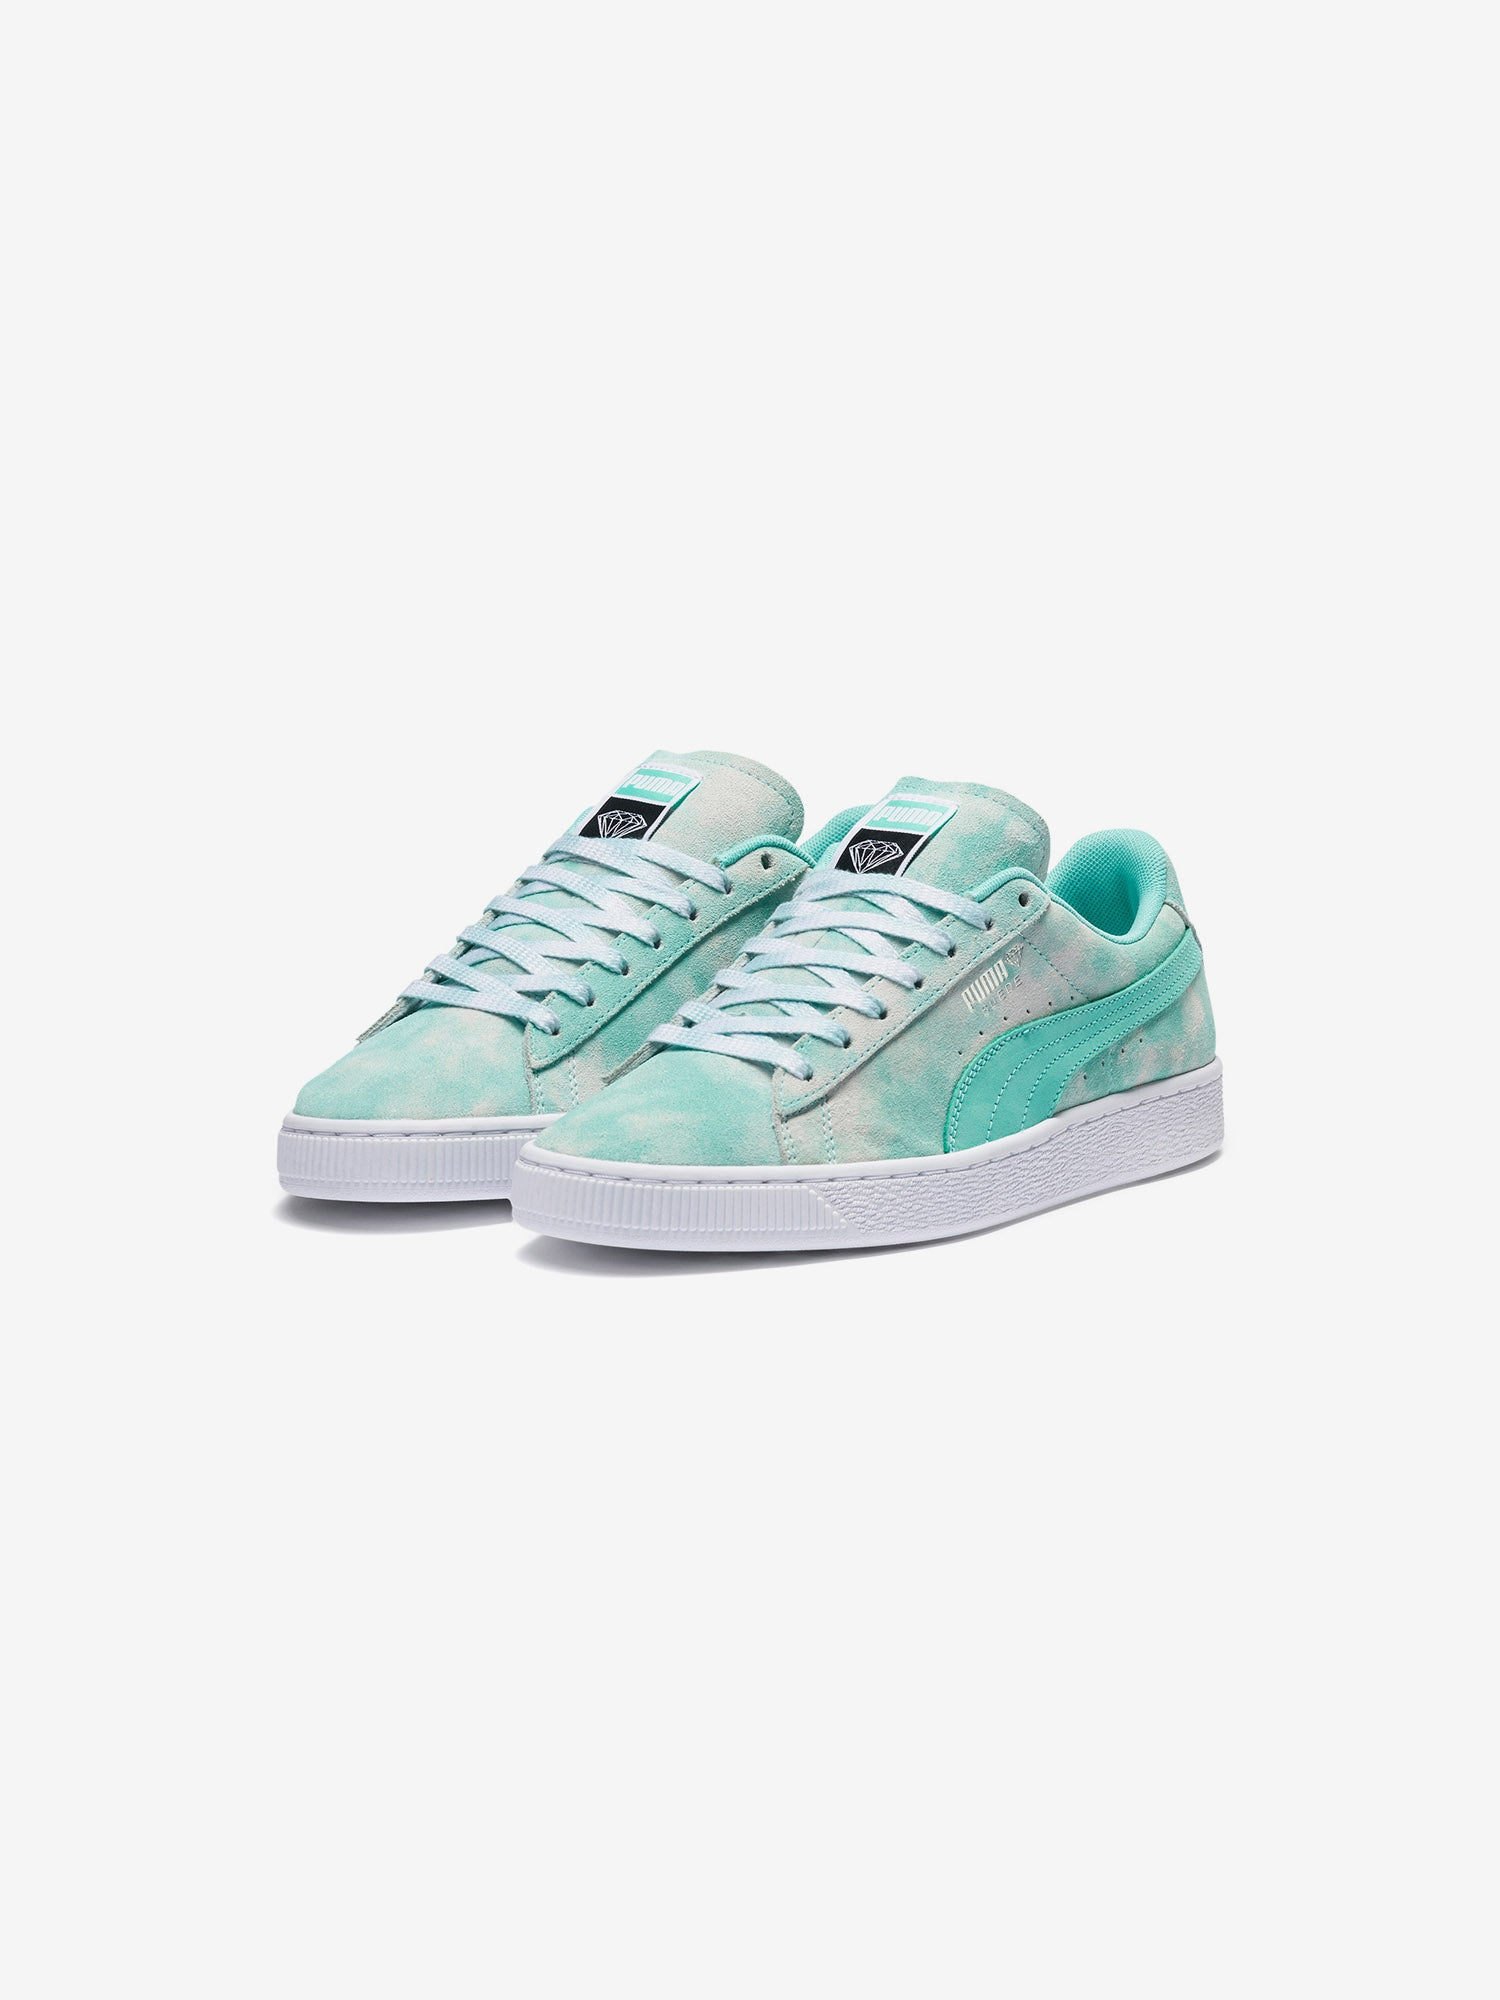 Puma And Diamond Supply Co. Team Up For a Full SpringSummer